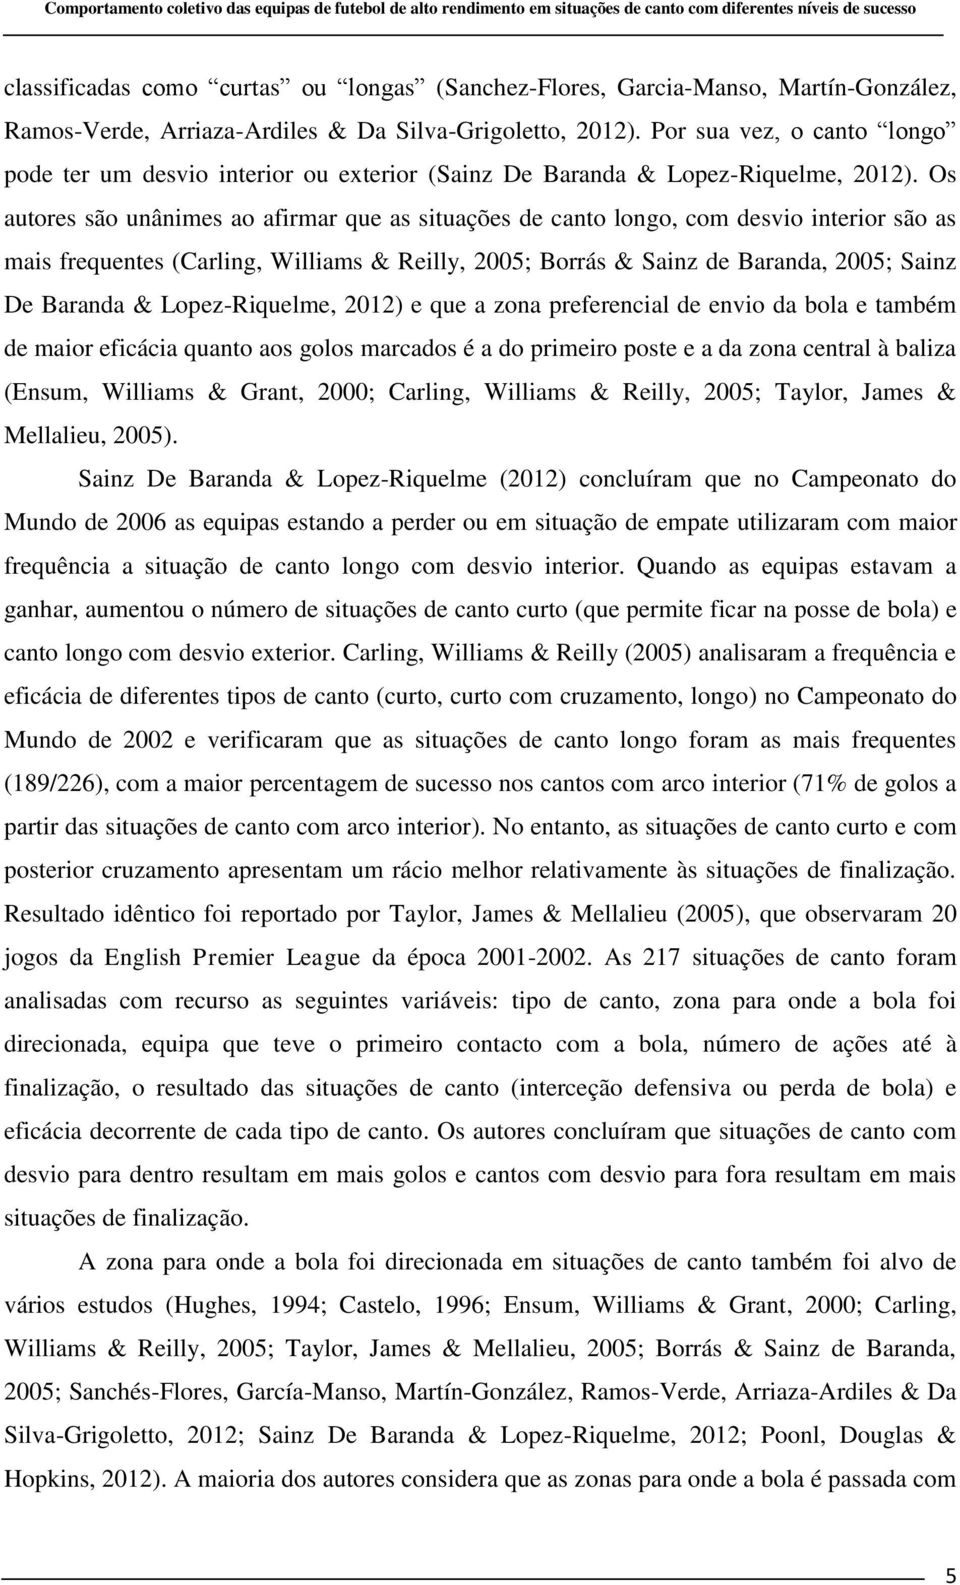 Os autores são unânimes ao afirmar que as situações de canto longo, com desvio interior são as mais frequentes (Carling, Williams & Reilly, 2005; Borrás & Sainz de Baranda, 2005; Sainz De Baranda &